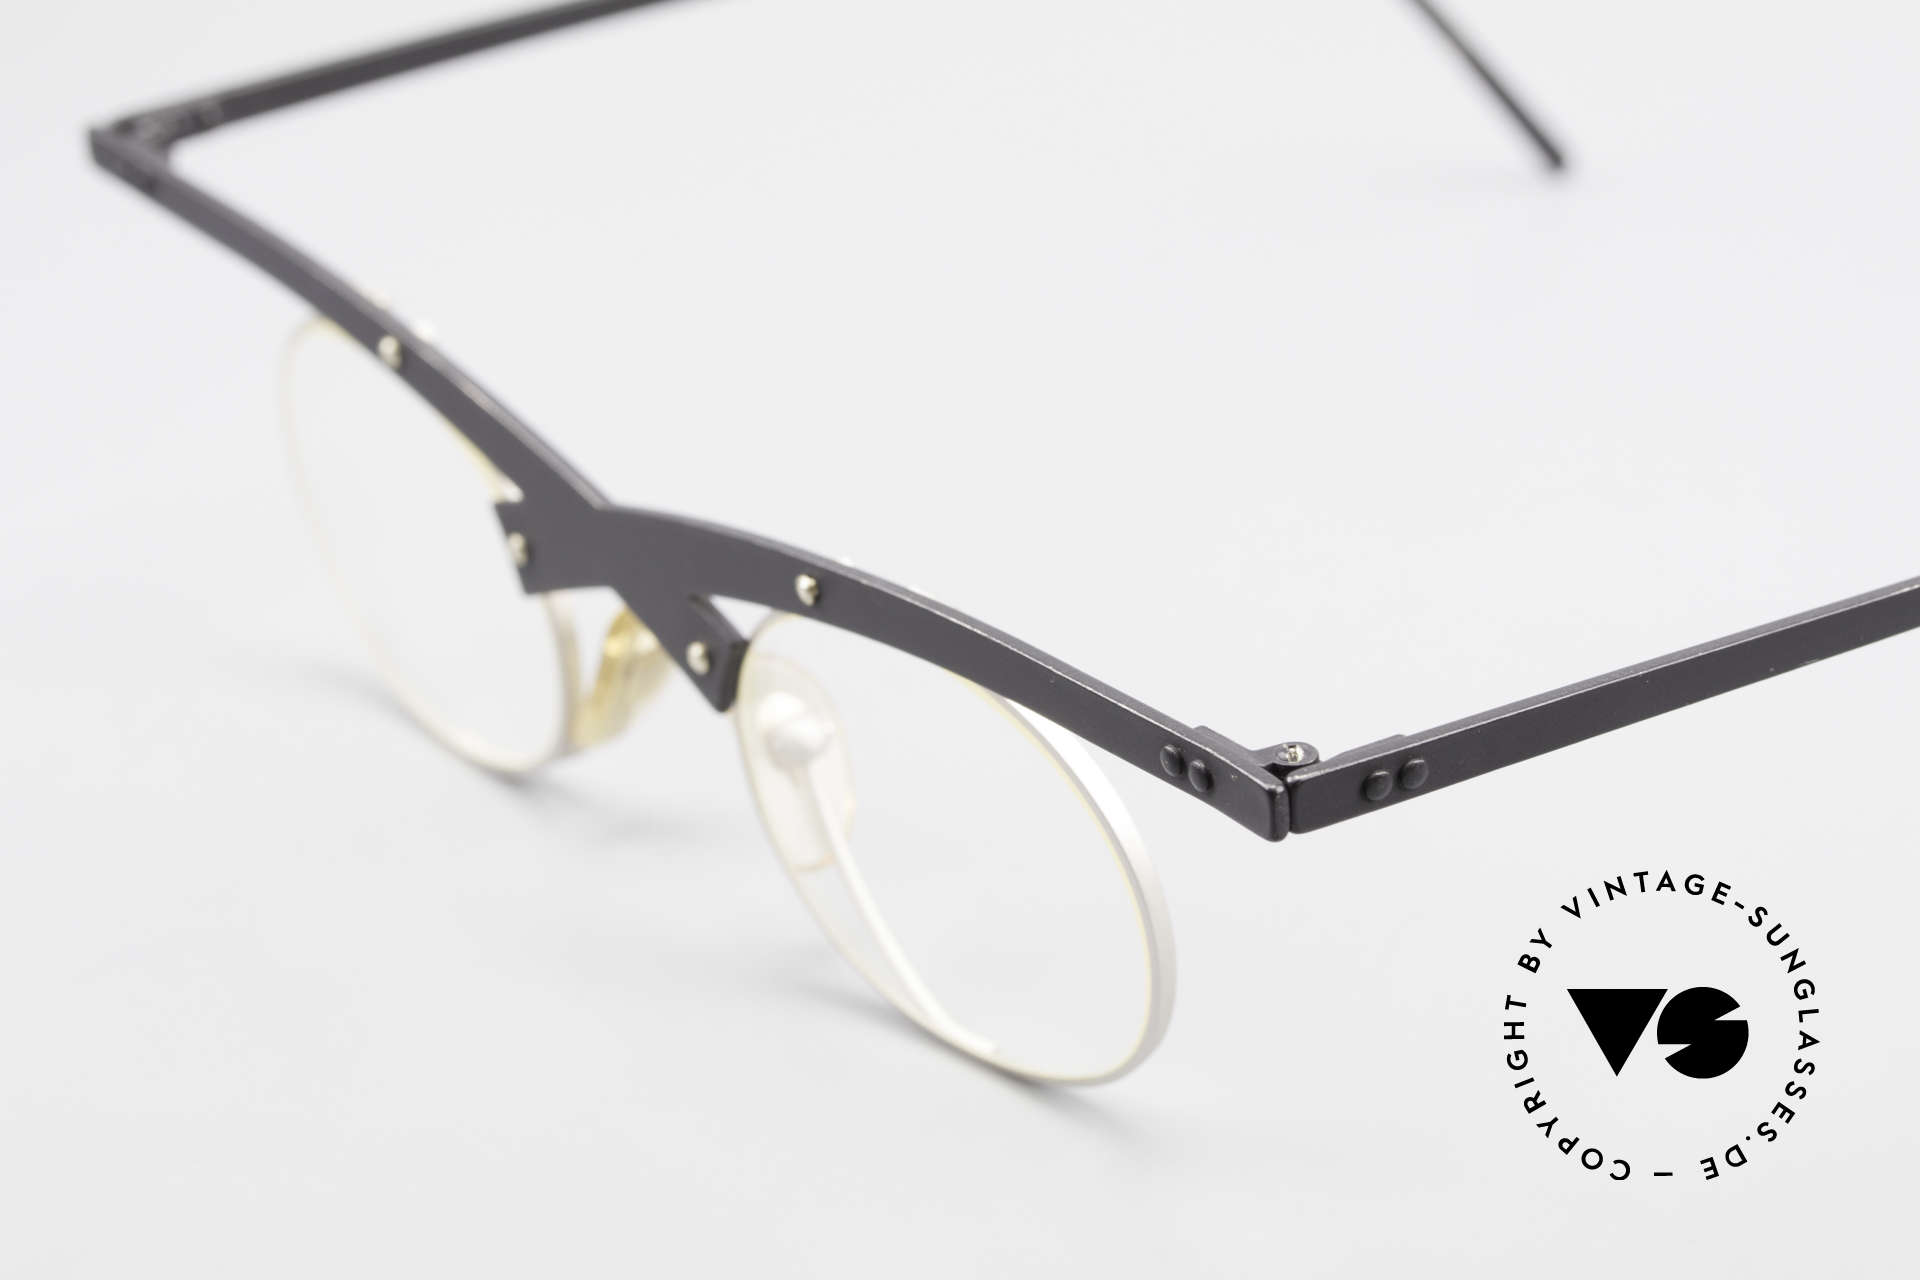 Theo Belgium Hio 11S Crazy 90's Vintage Eyeglasses, crazy 1990's metal eyeglasses in top-quality; art object!, Made for Men and Women